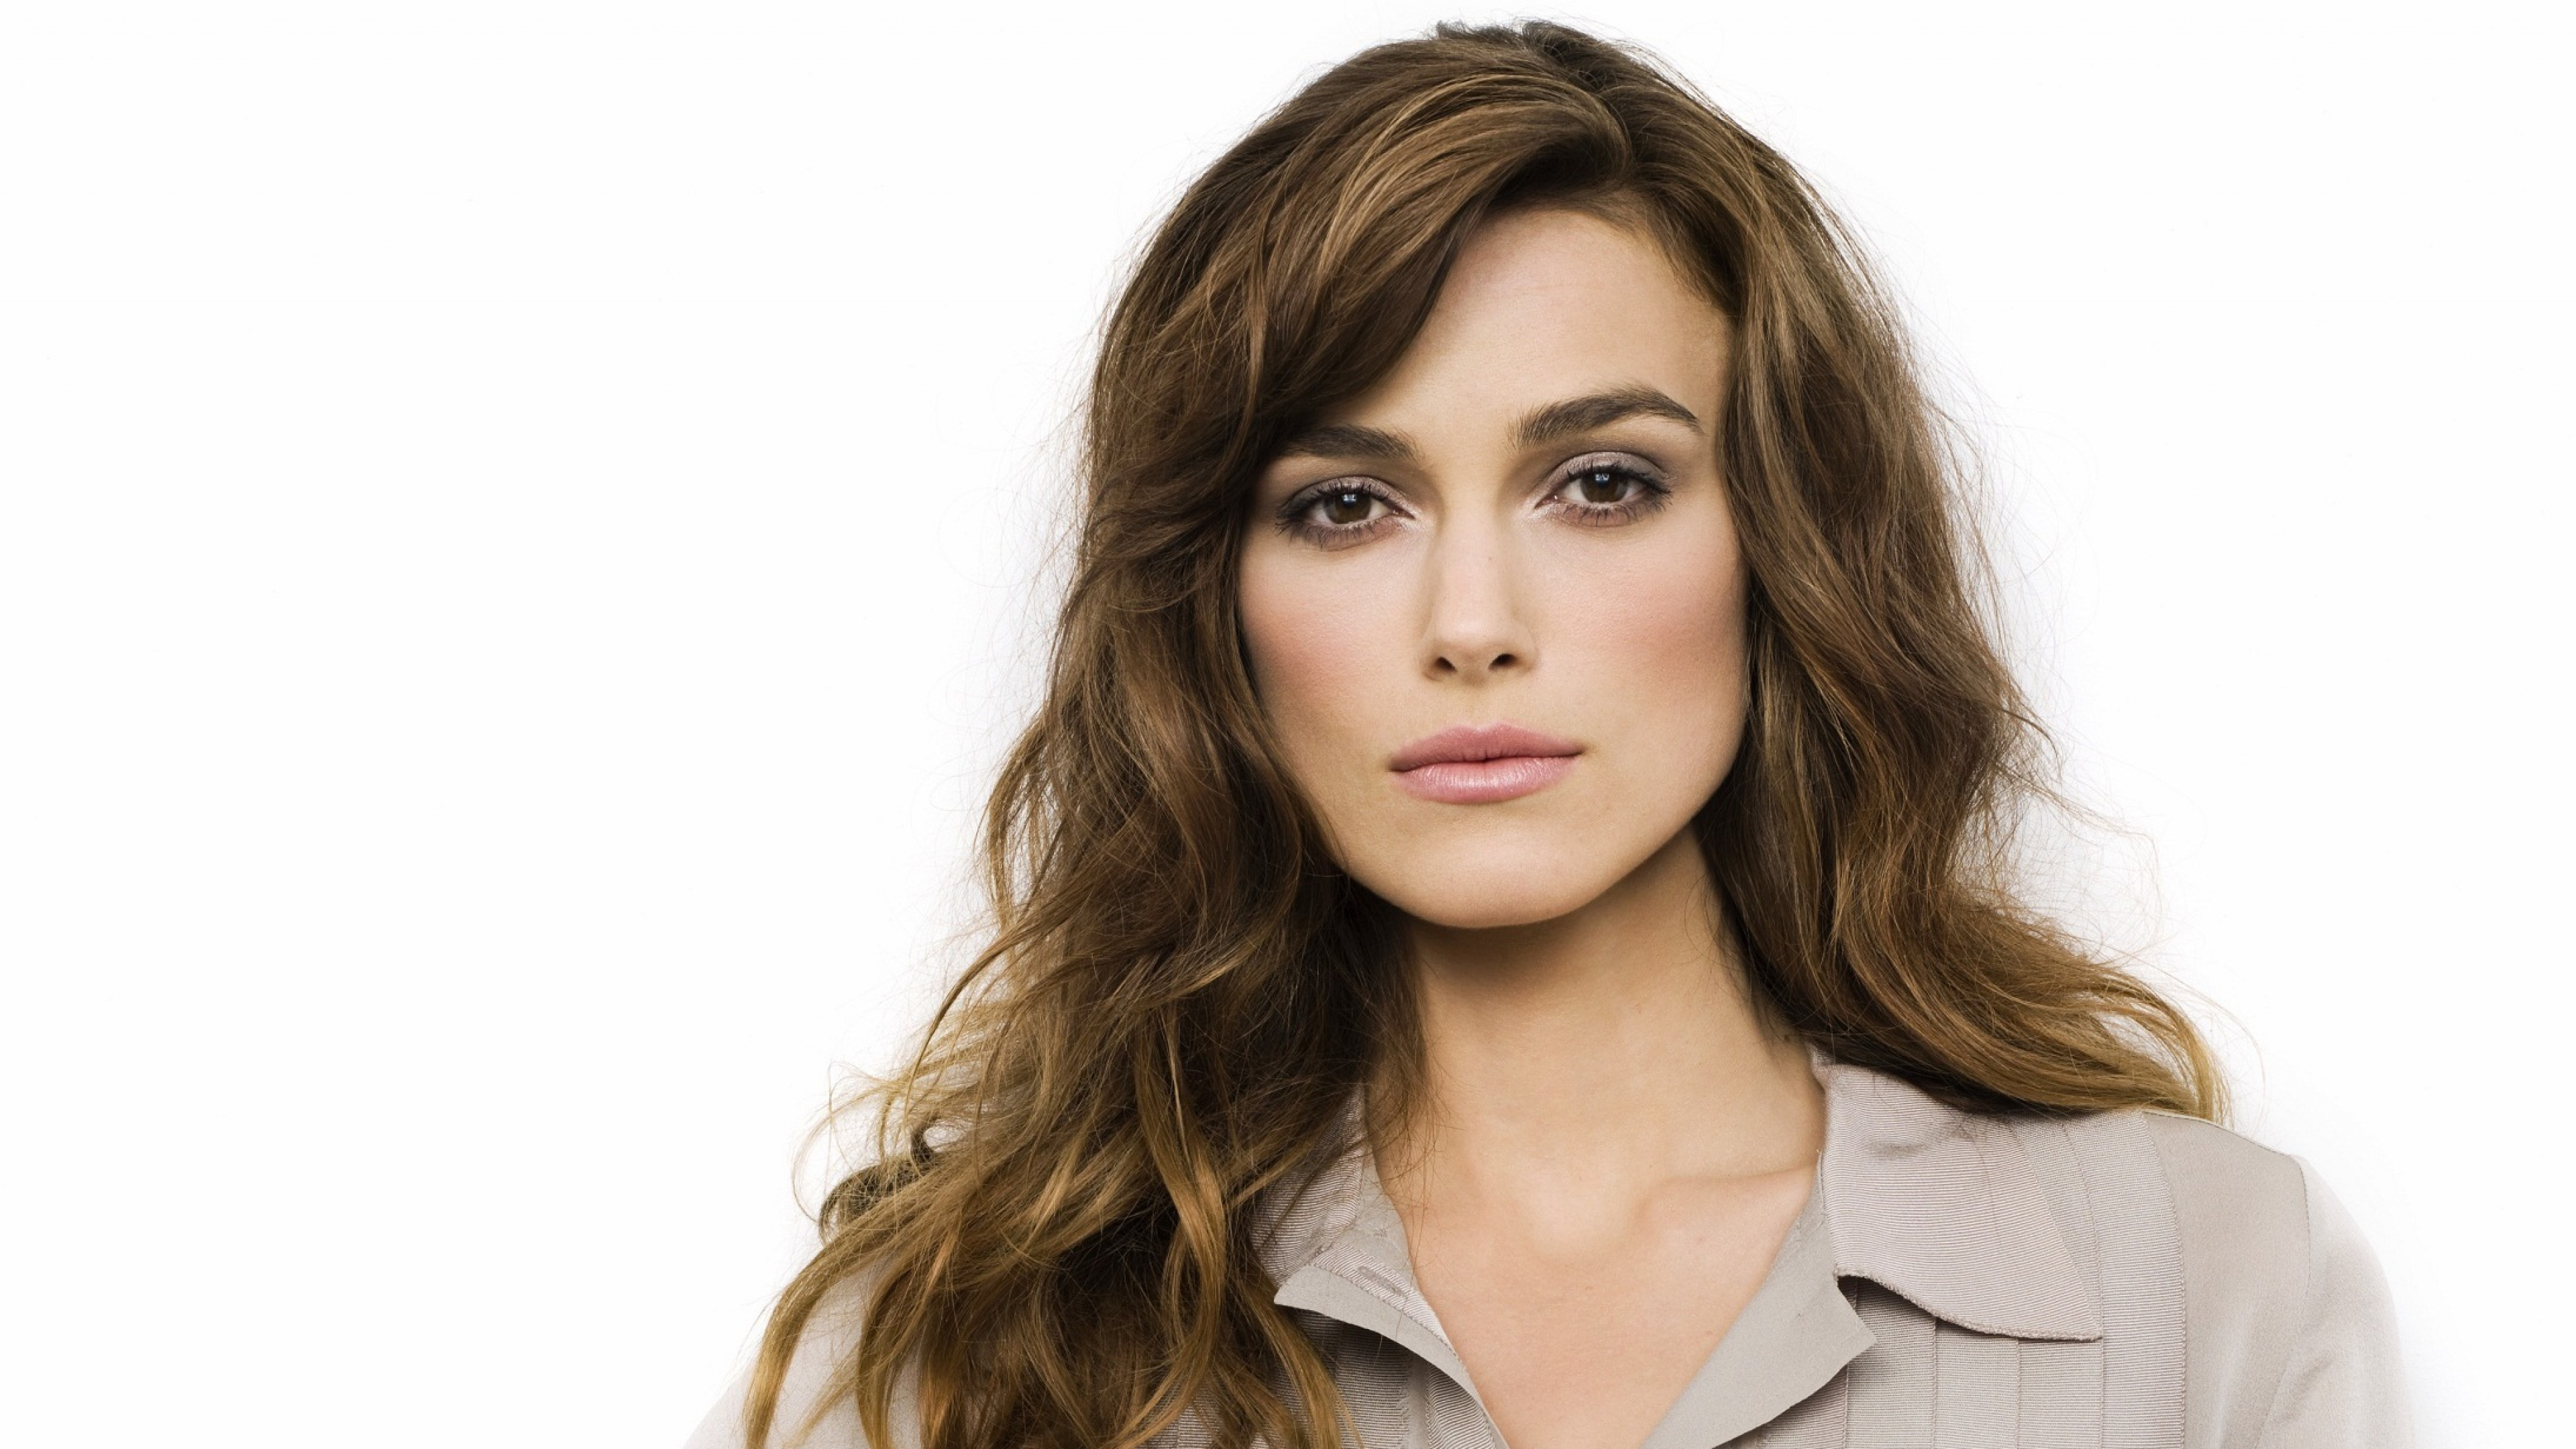 kiera knightley 1536855294 - Kiera Knightley - keira knightley wallpapers, girls wallpapers, celebrities wallpapers, brunette wallpapers